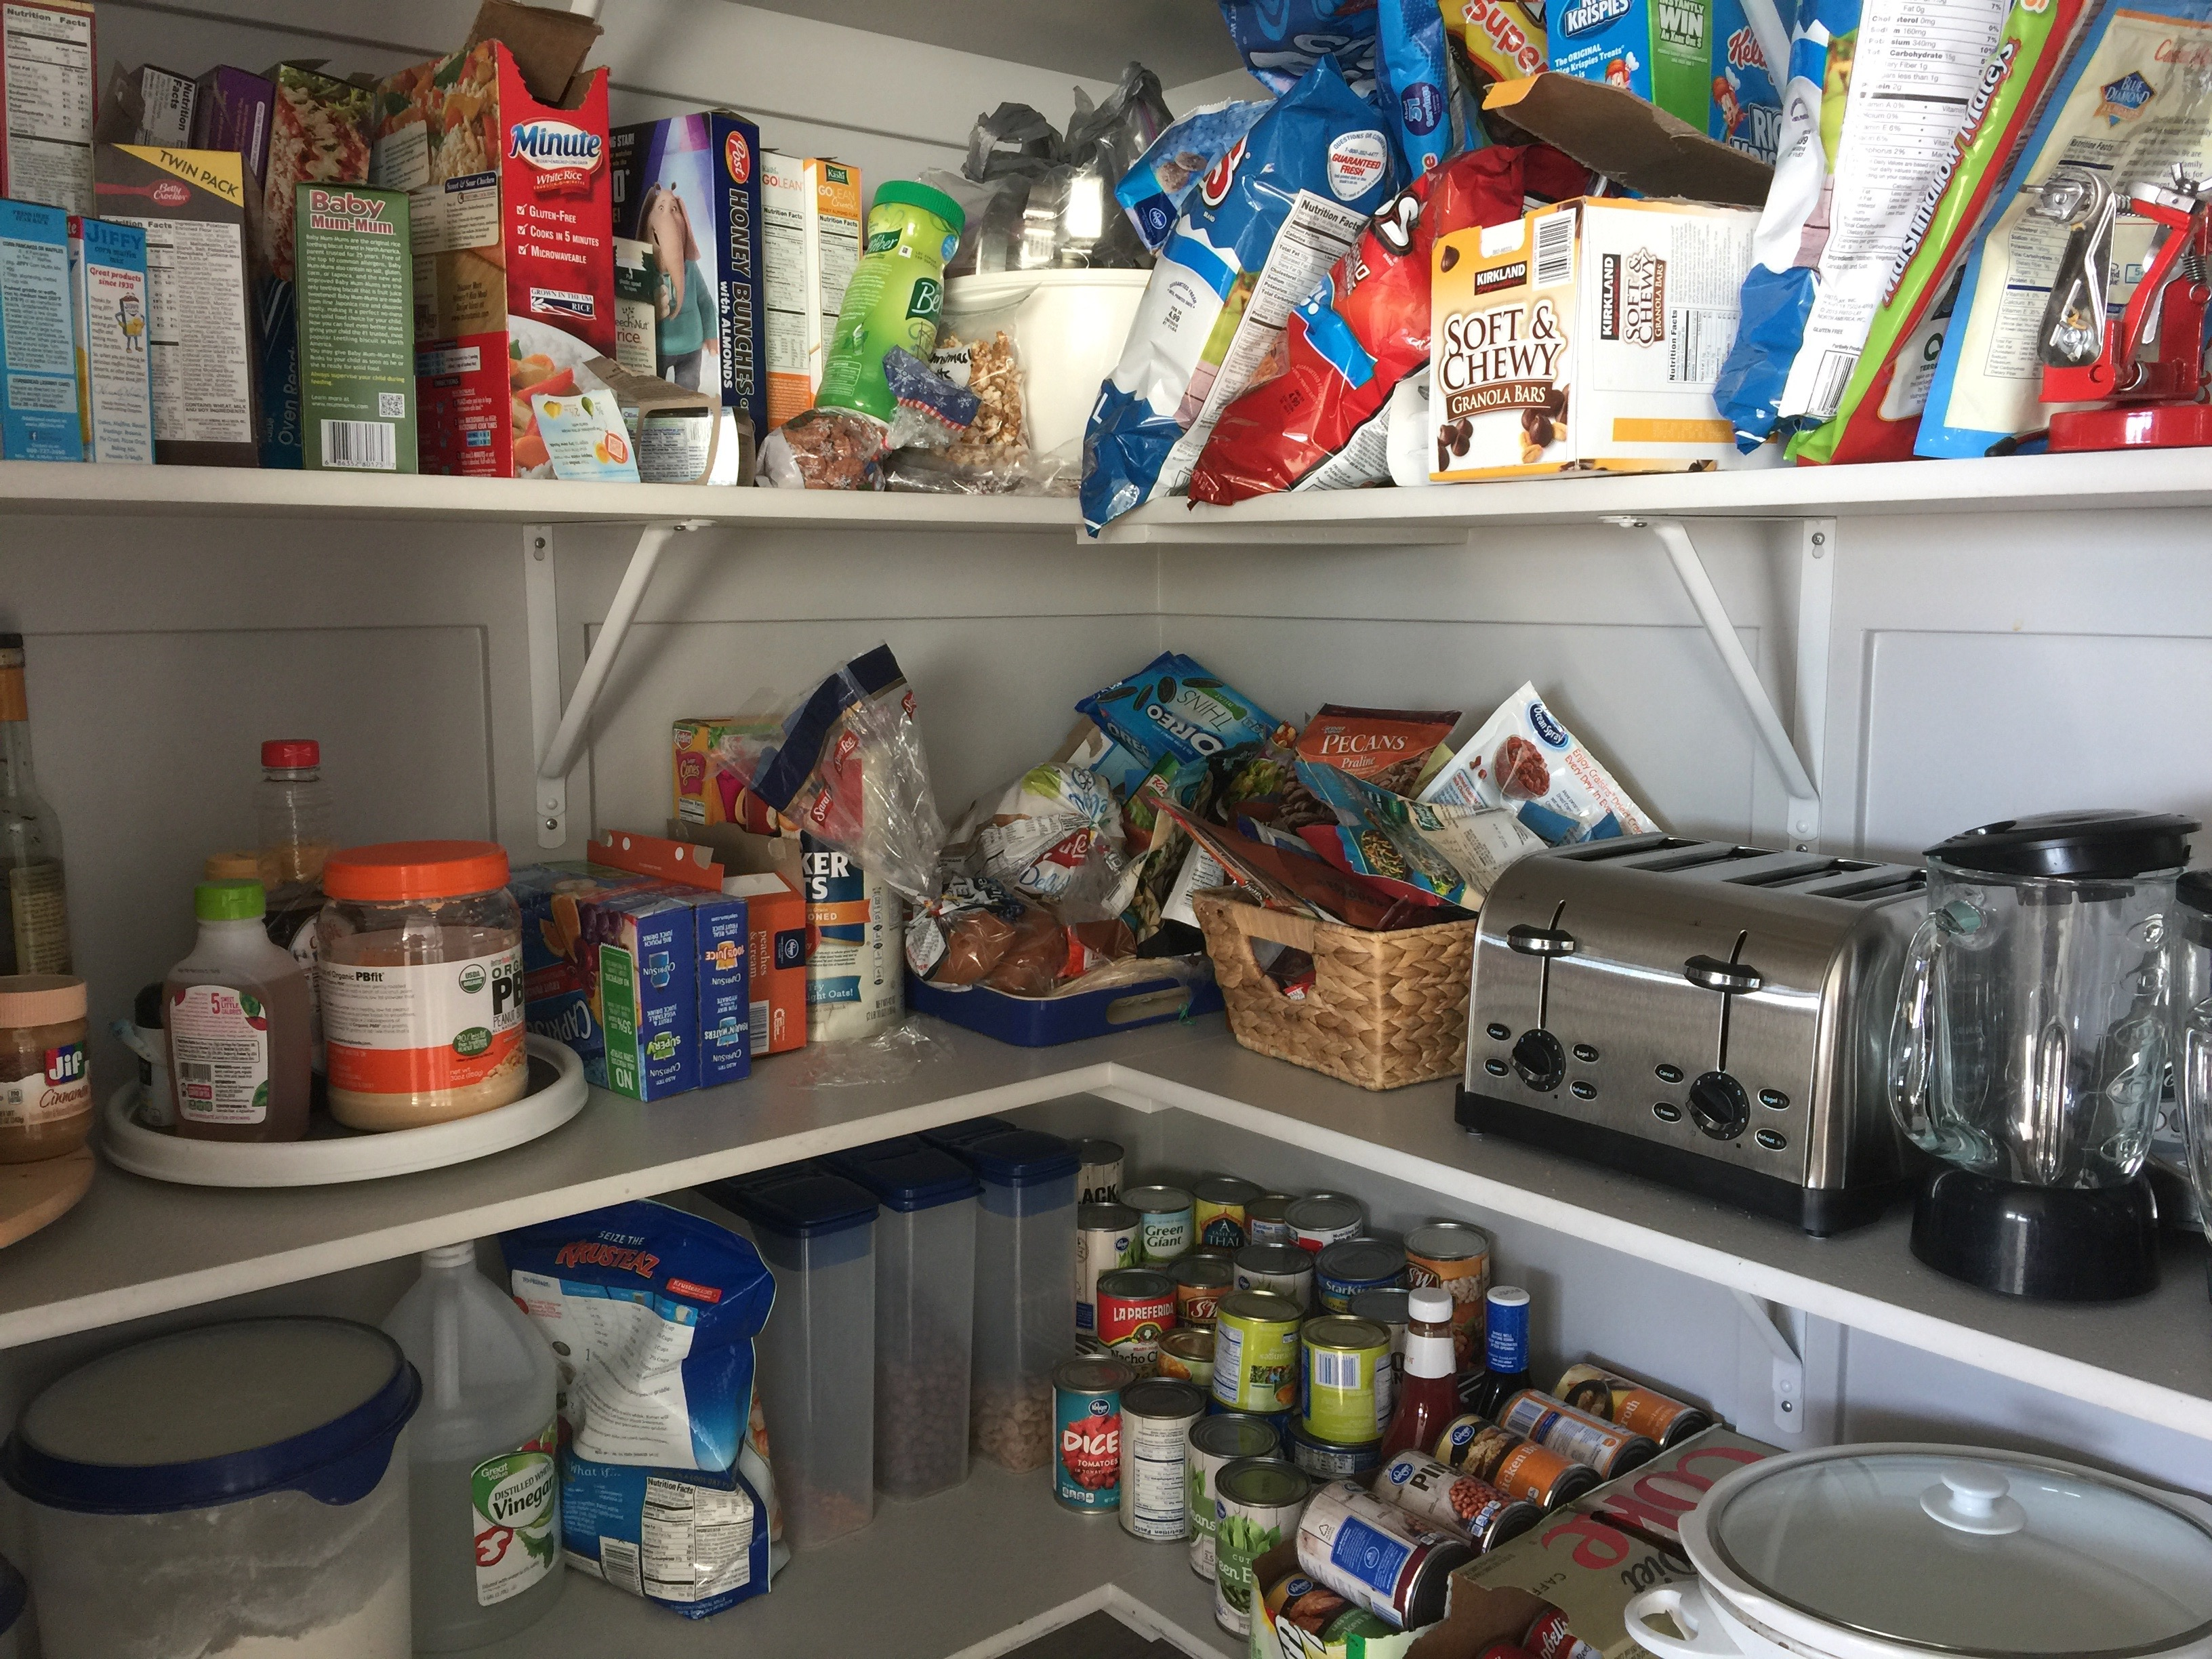 and here it is now - Organized Pantry